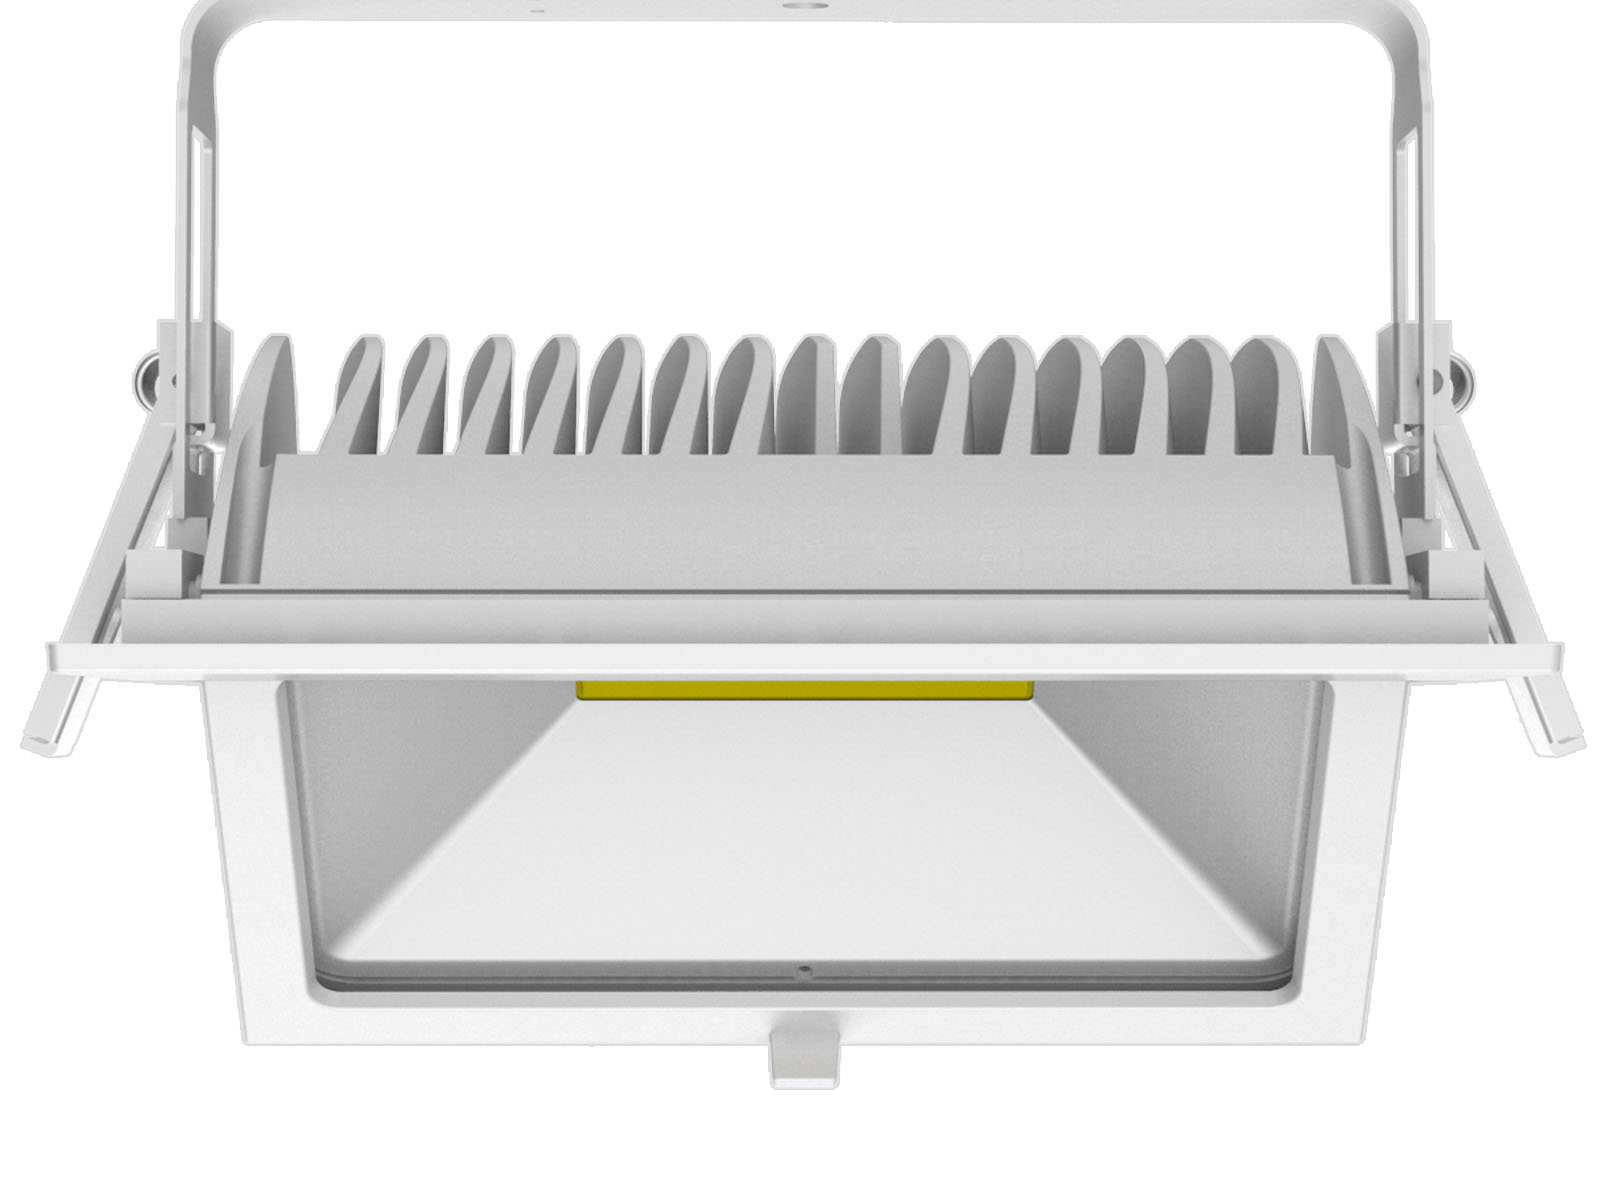 12 Watts RD01 1 compatible led downlights